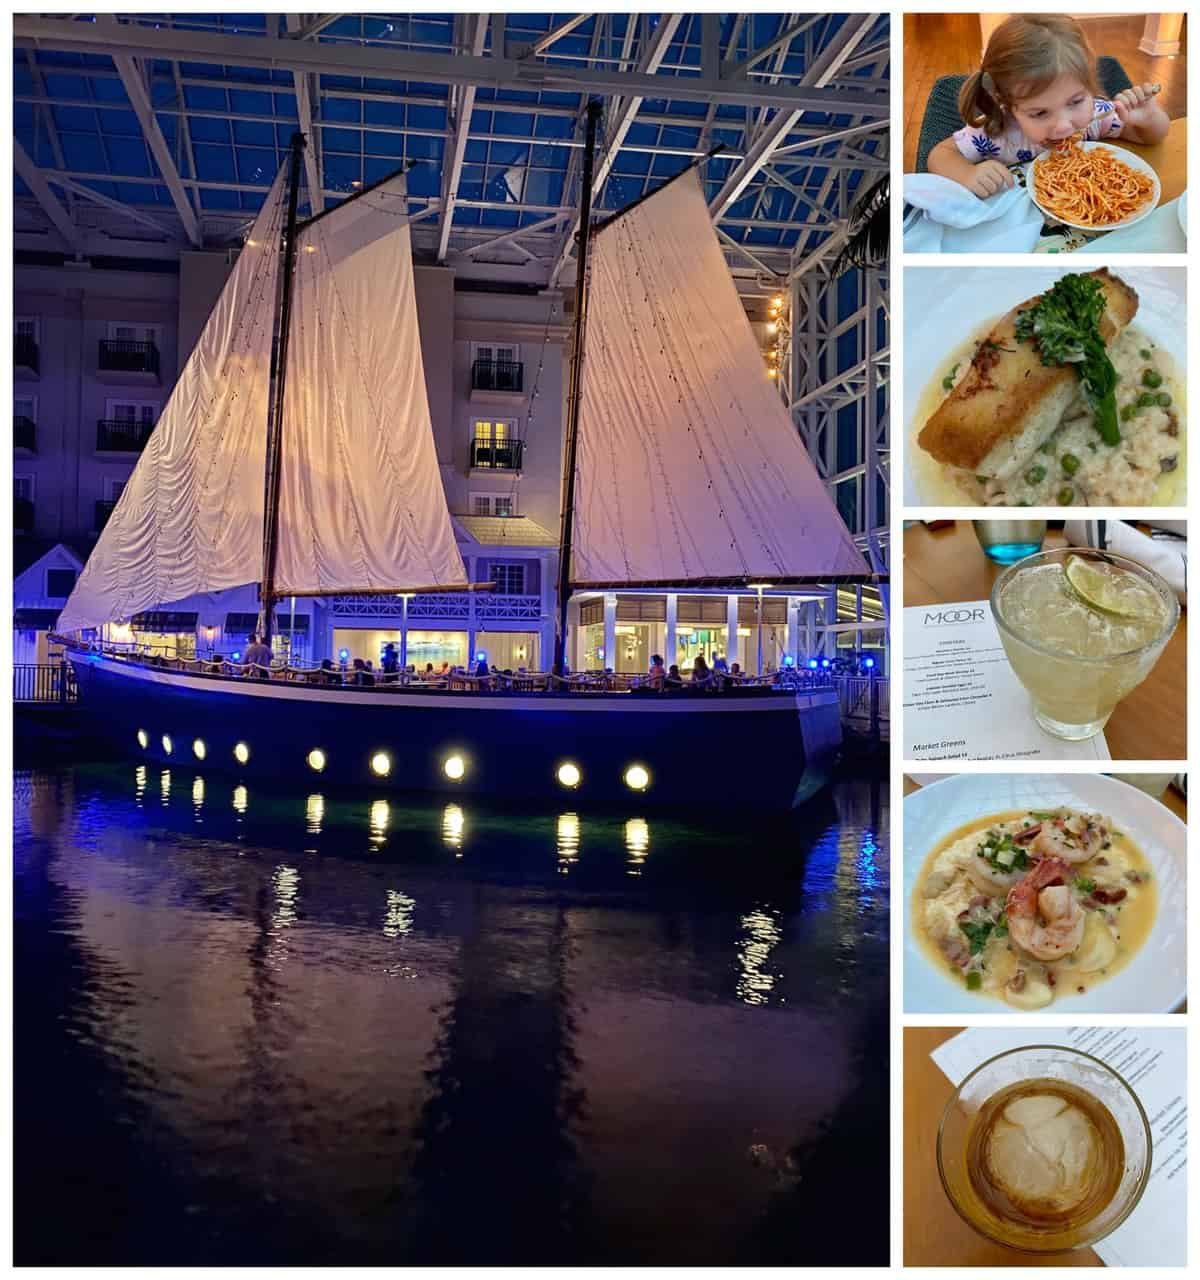 Six photo collage: picture of sailboat dining on water at night, two drinks, two entrees, and little girl eating spaghetti.